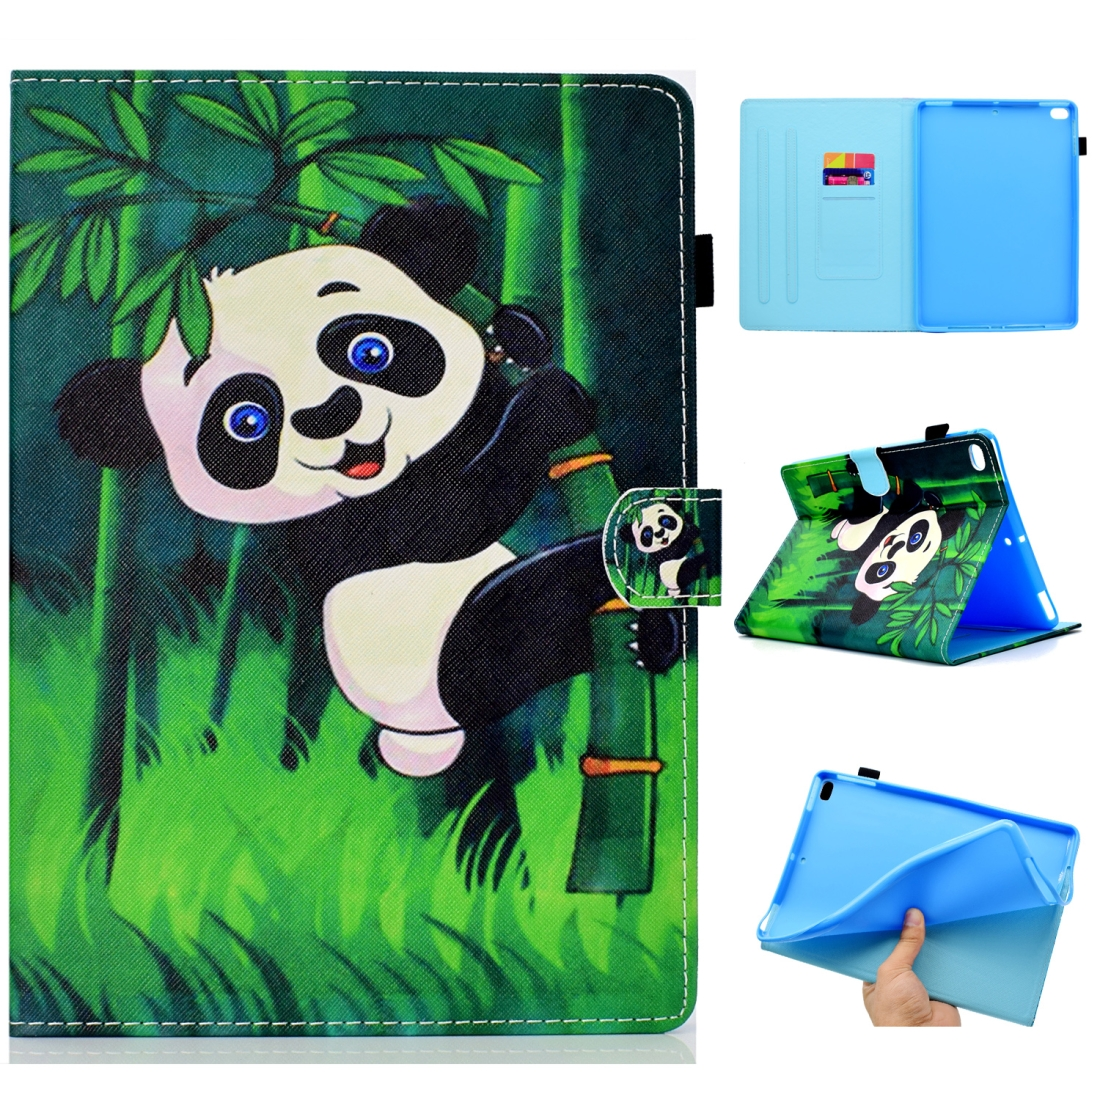 Case For iPad 5/ 6 Artistic Stitching Leather Case, with Sleeves & Auto Sleep function (Panda)